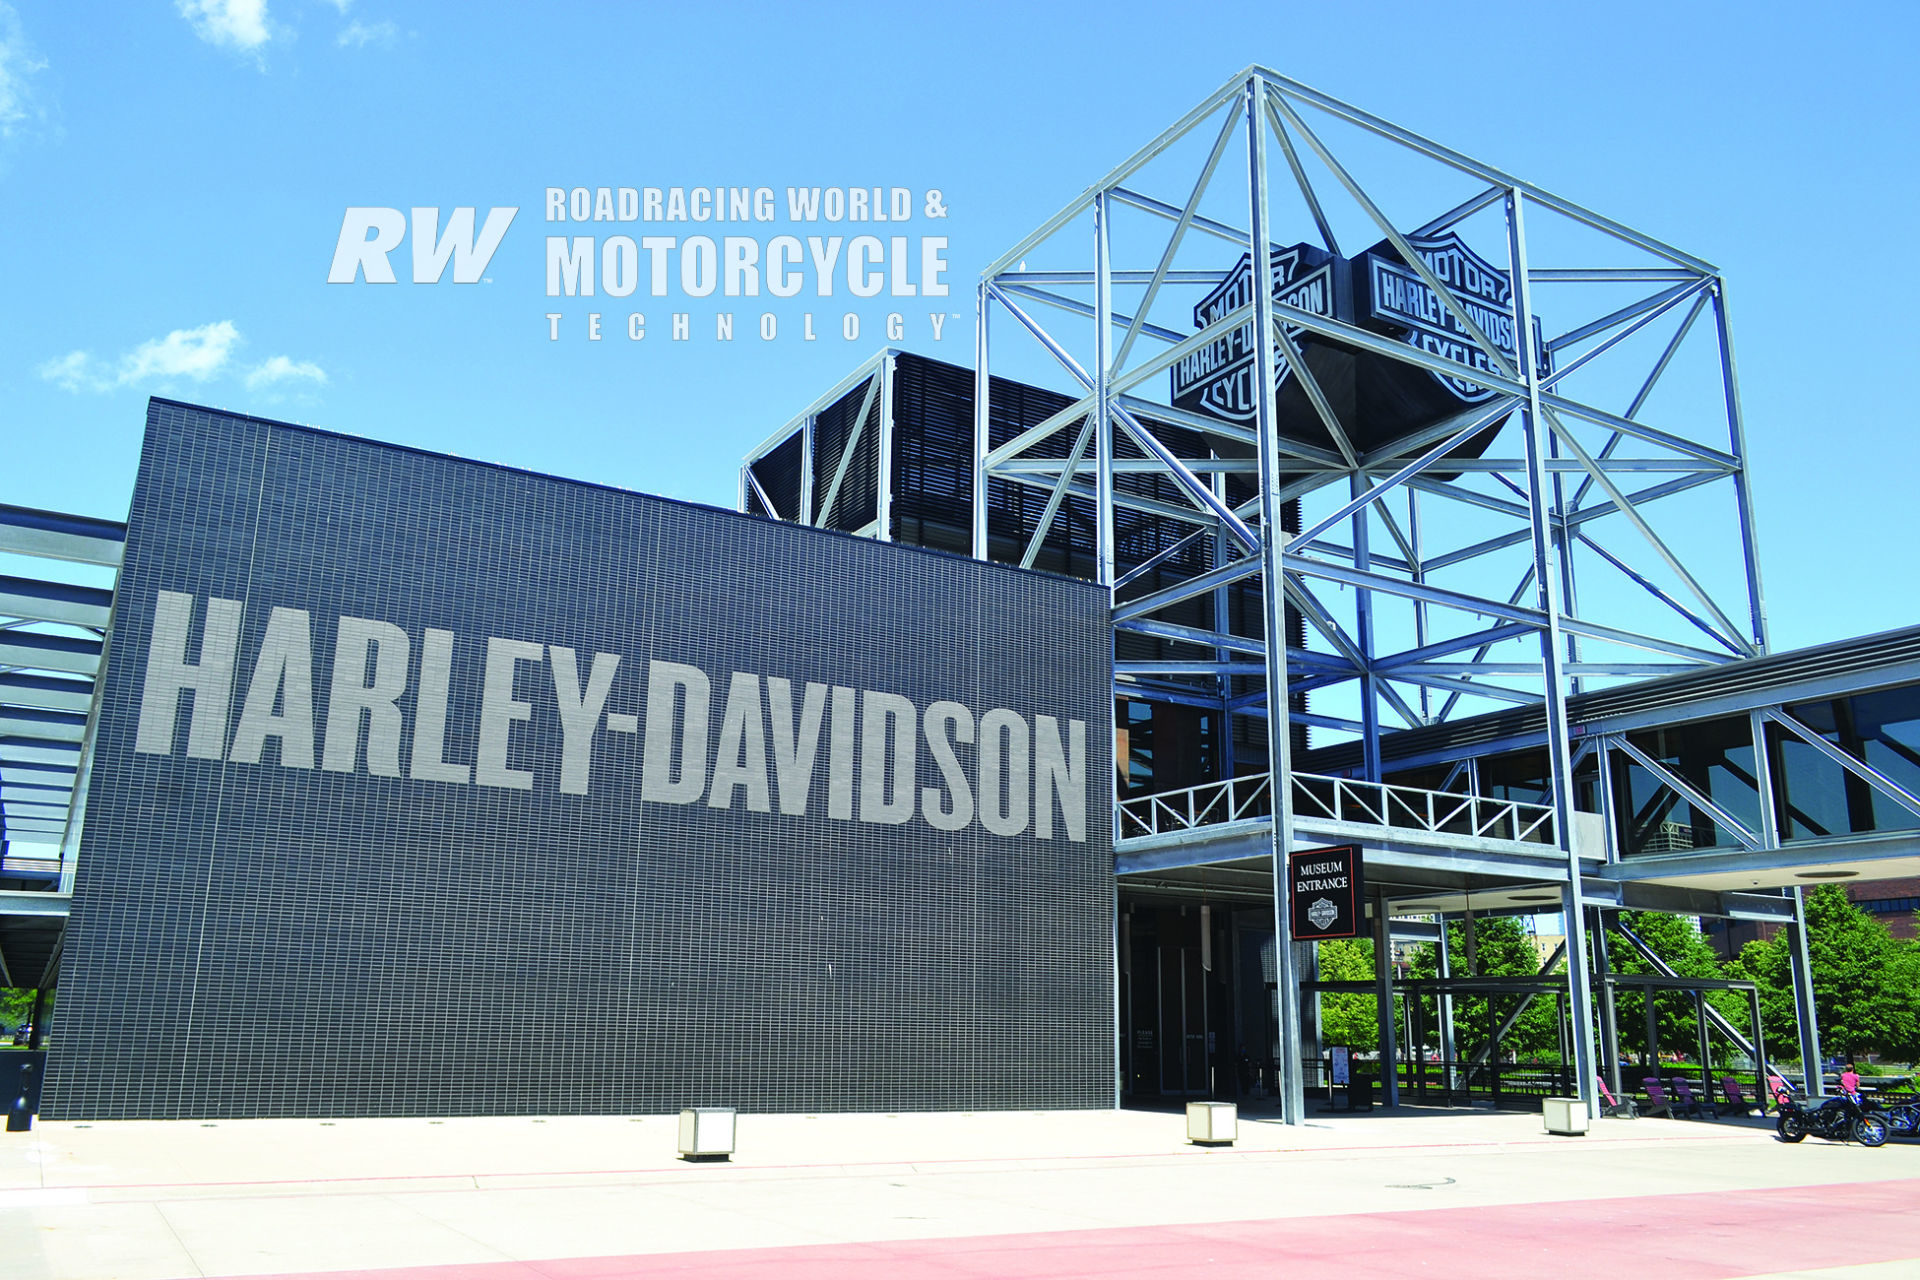 The Harley-Davidson Museum includes a 50,000-square-foot main exhibit space plus additional facilities and buildings on a picturesque 20-acre campus south of downtown Milwaukee. Photos by David Swarts.